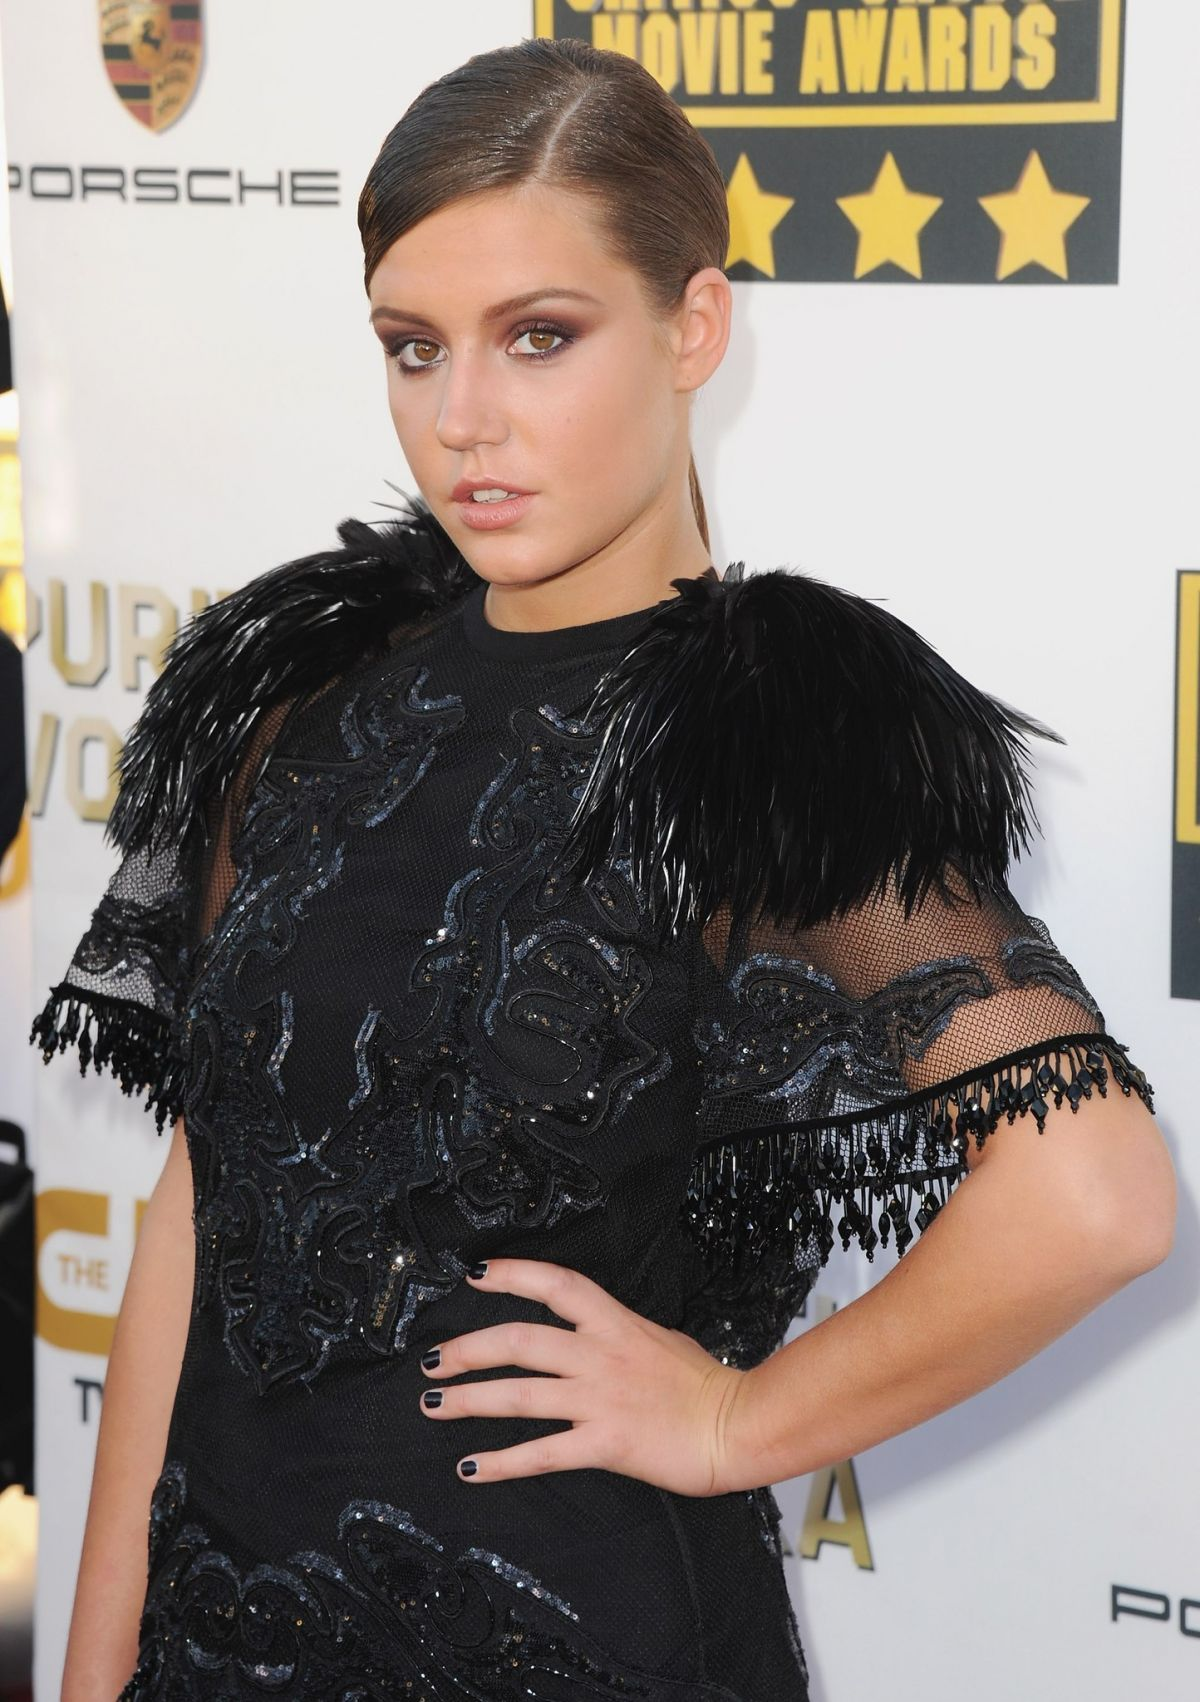 ADELE EXARCHOPOULOS at Critic's Choice Awards in Santa Monica